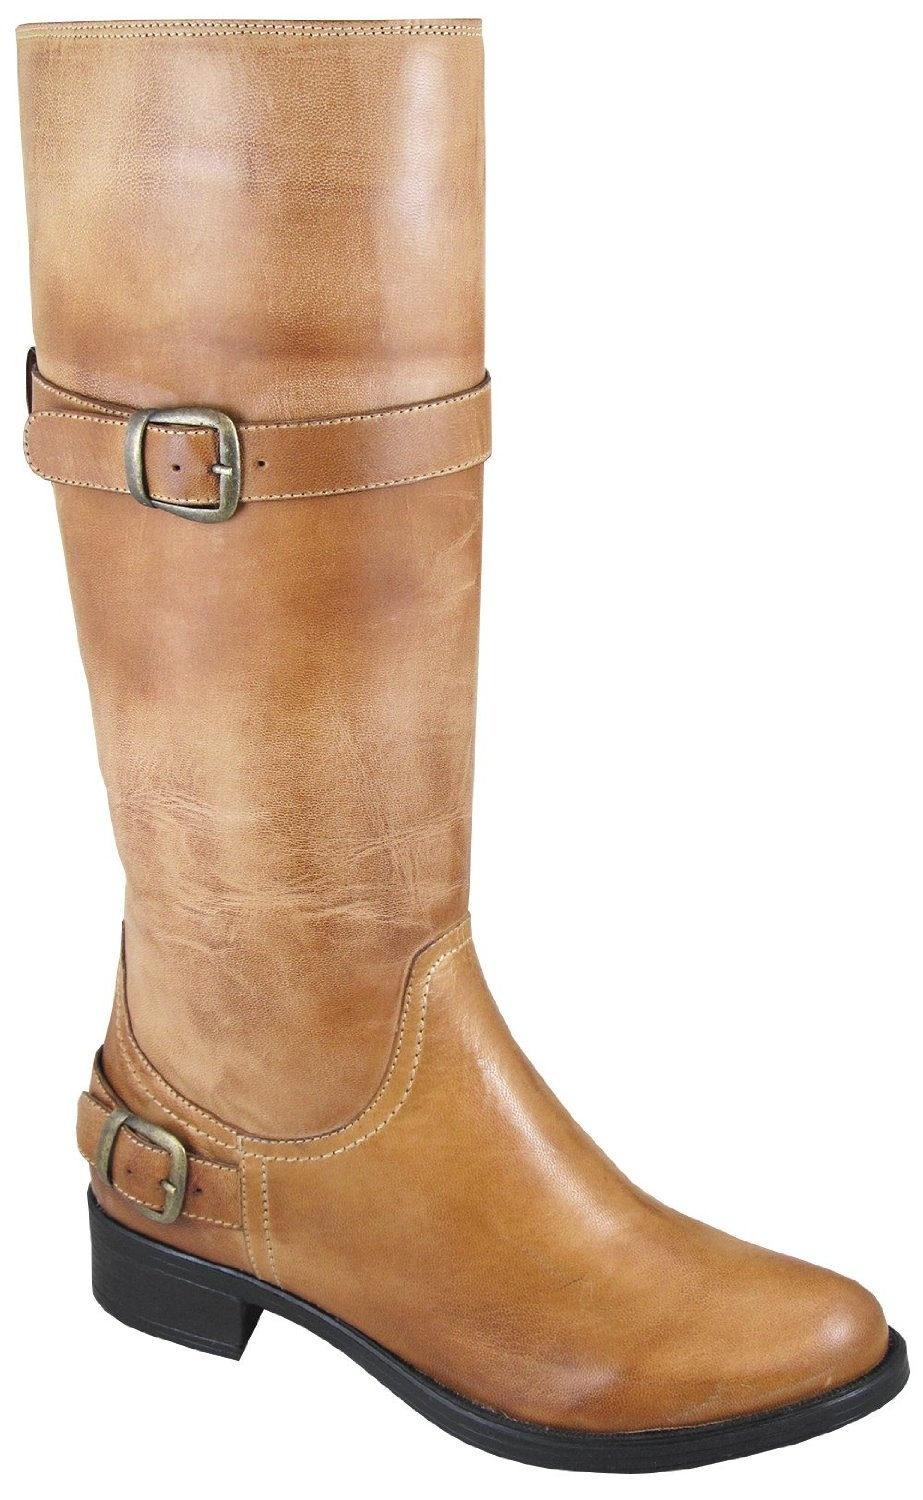 """Donna"" Womens Tall shaft tan Country Boots, Womens Tall shaft Boots,Womens Tall shaft Country Boots, womens riding boots"